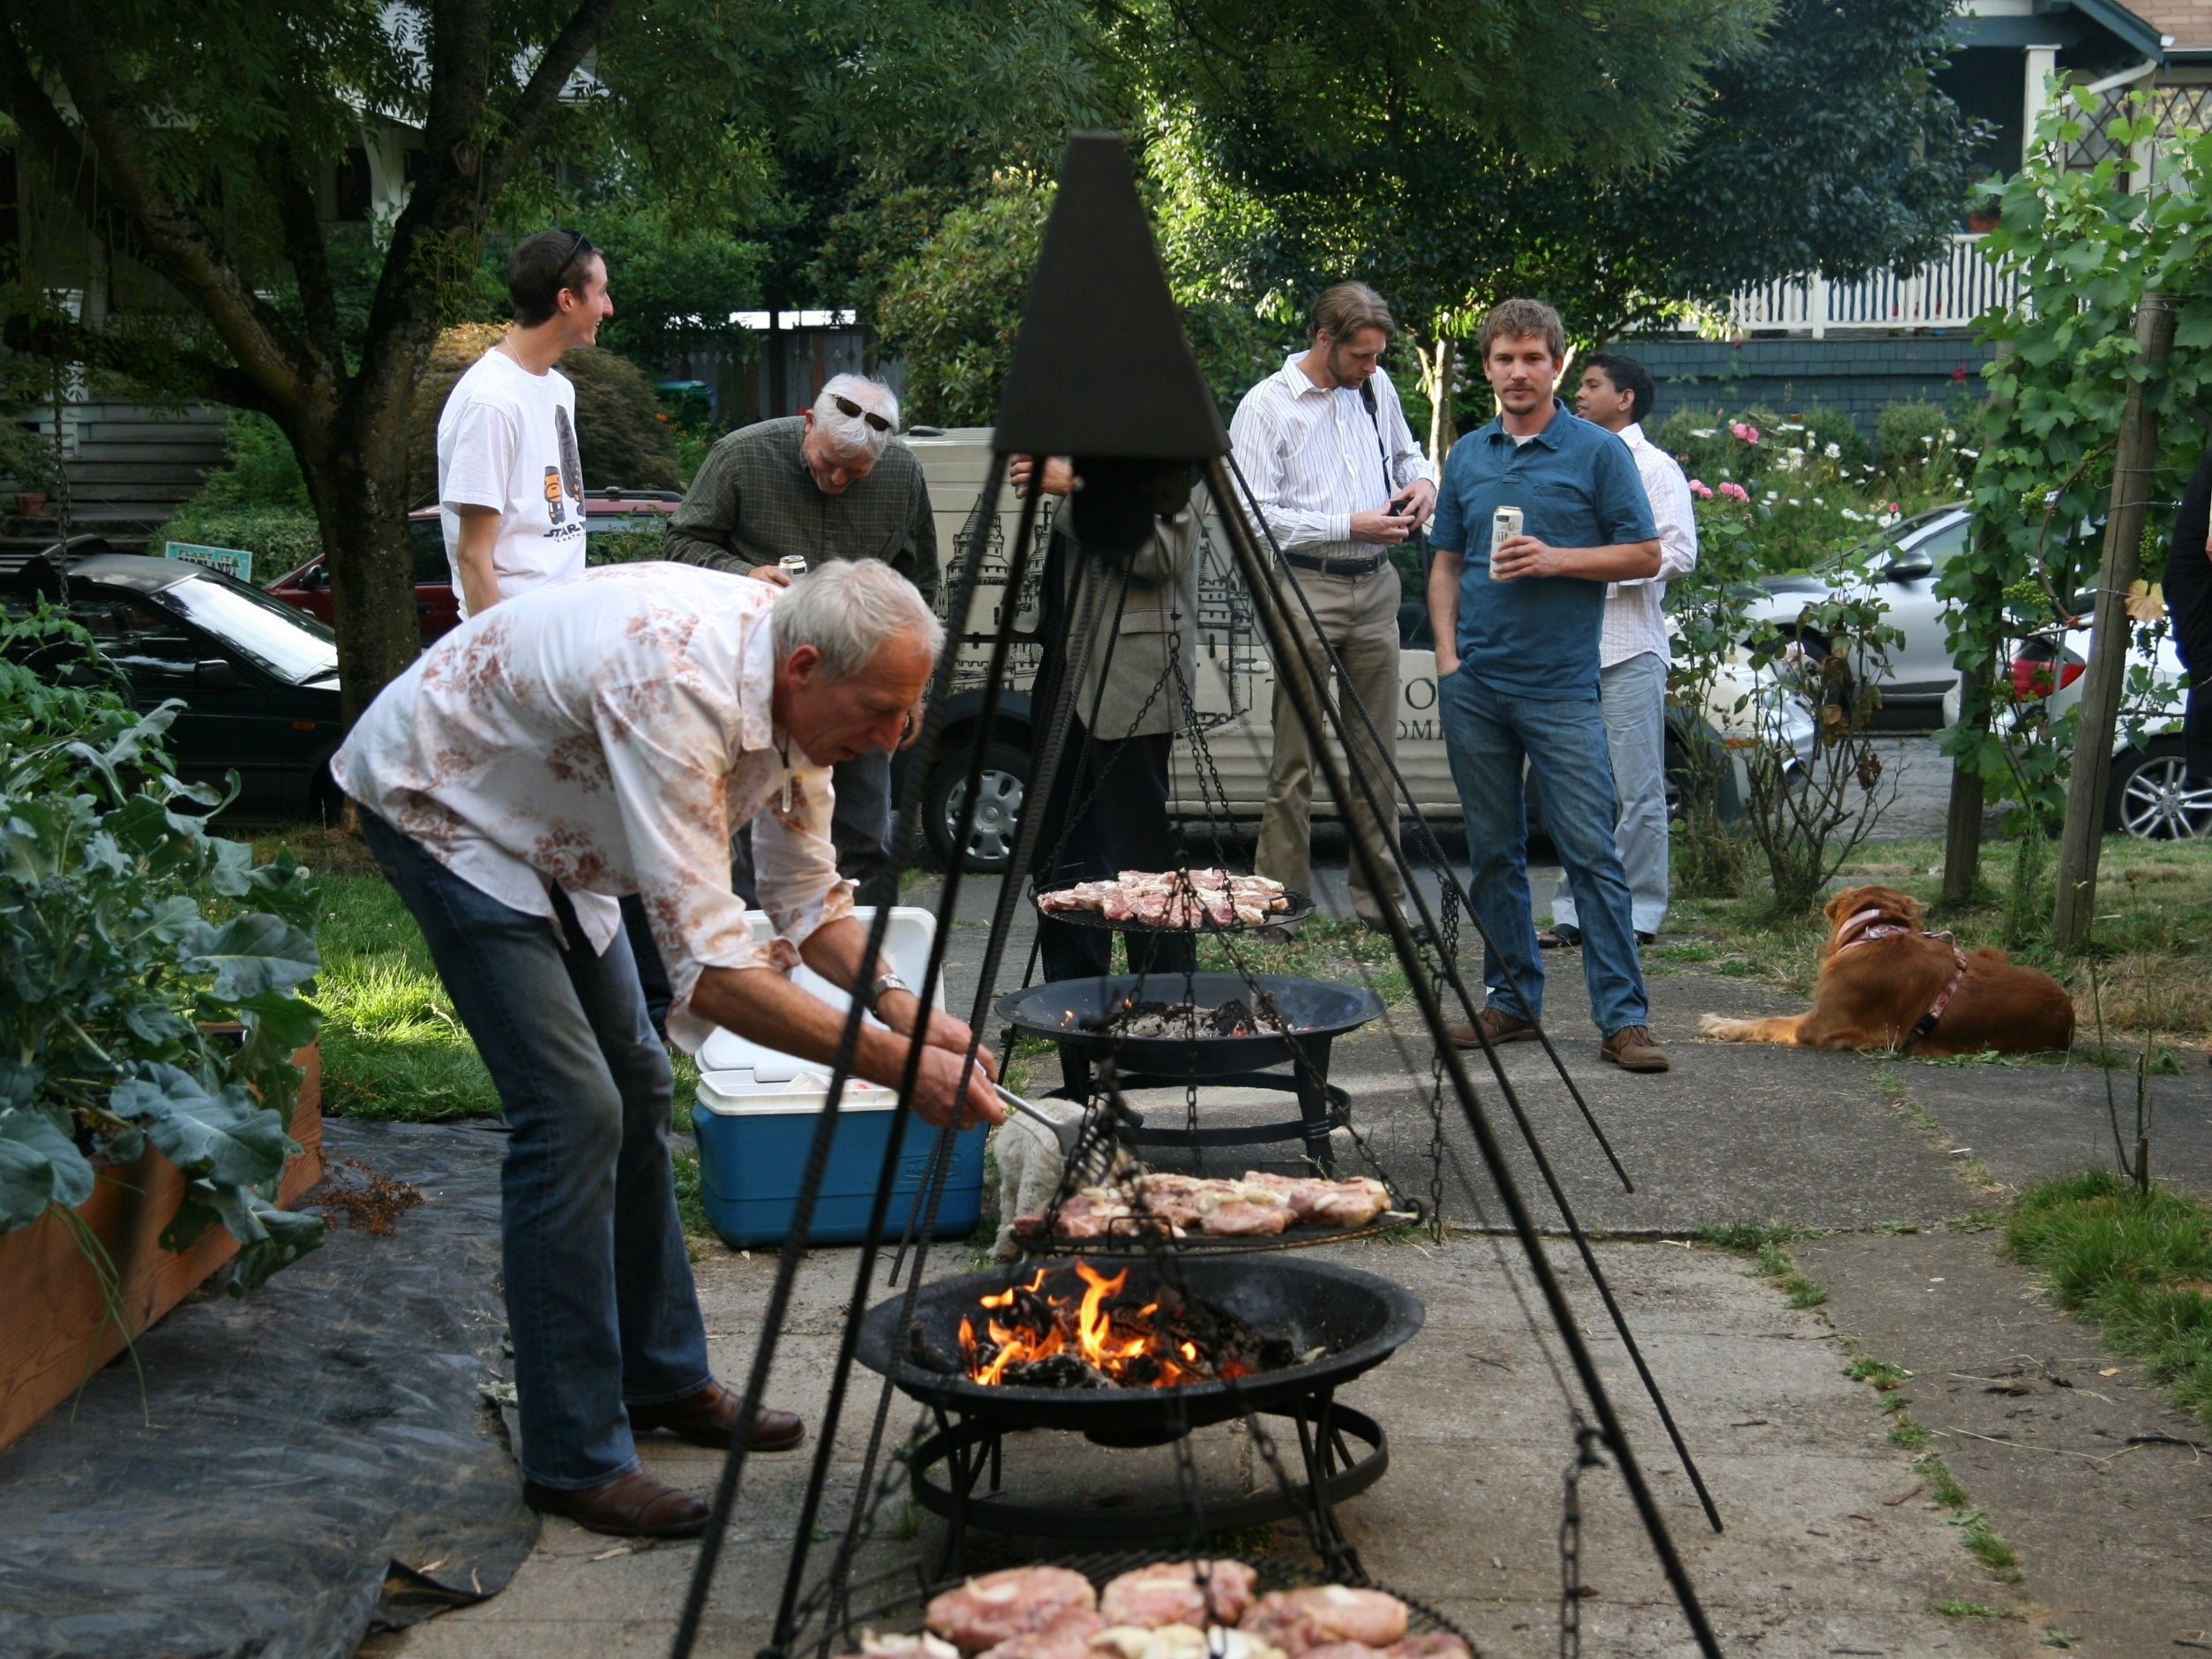 Creating A Schwenker World One Backyard Grill At A Time The Salt Npr